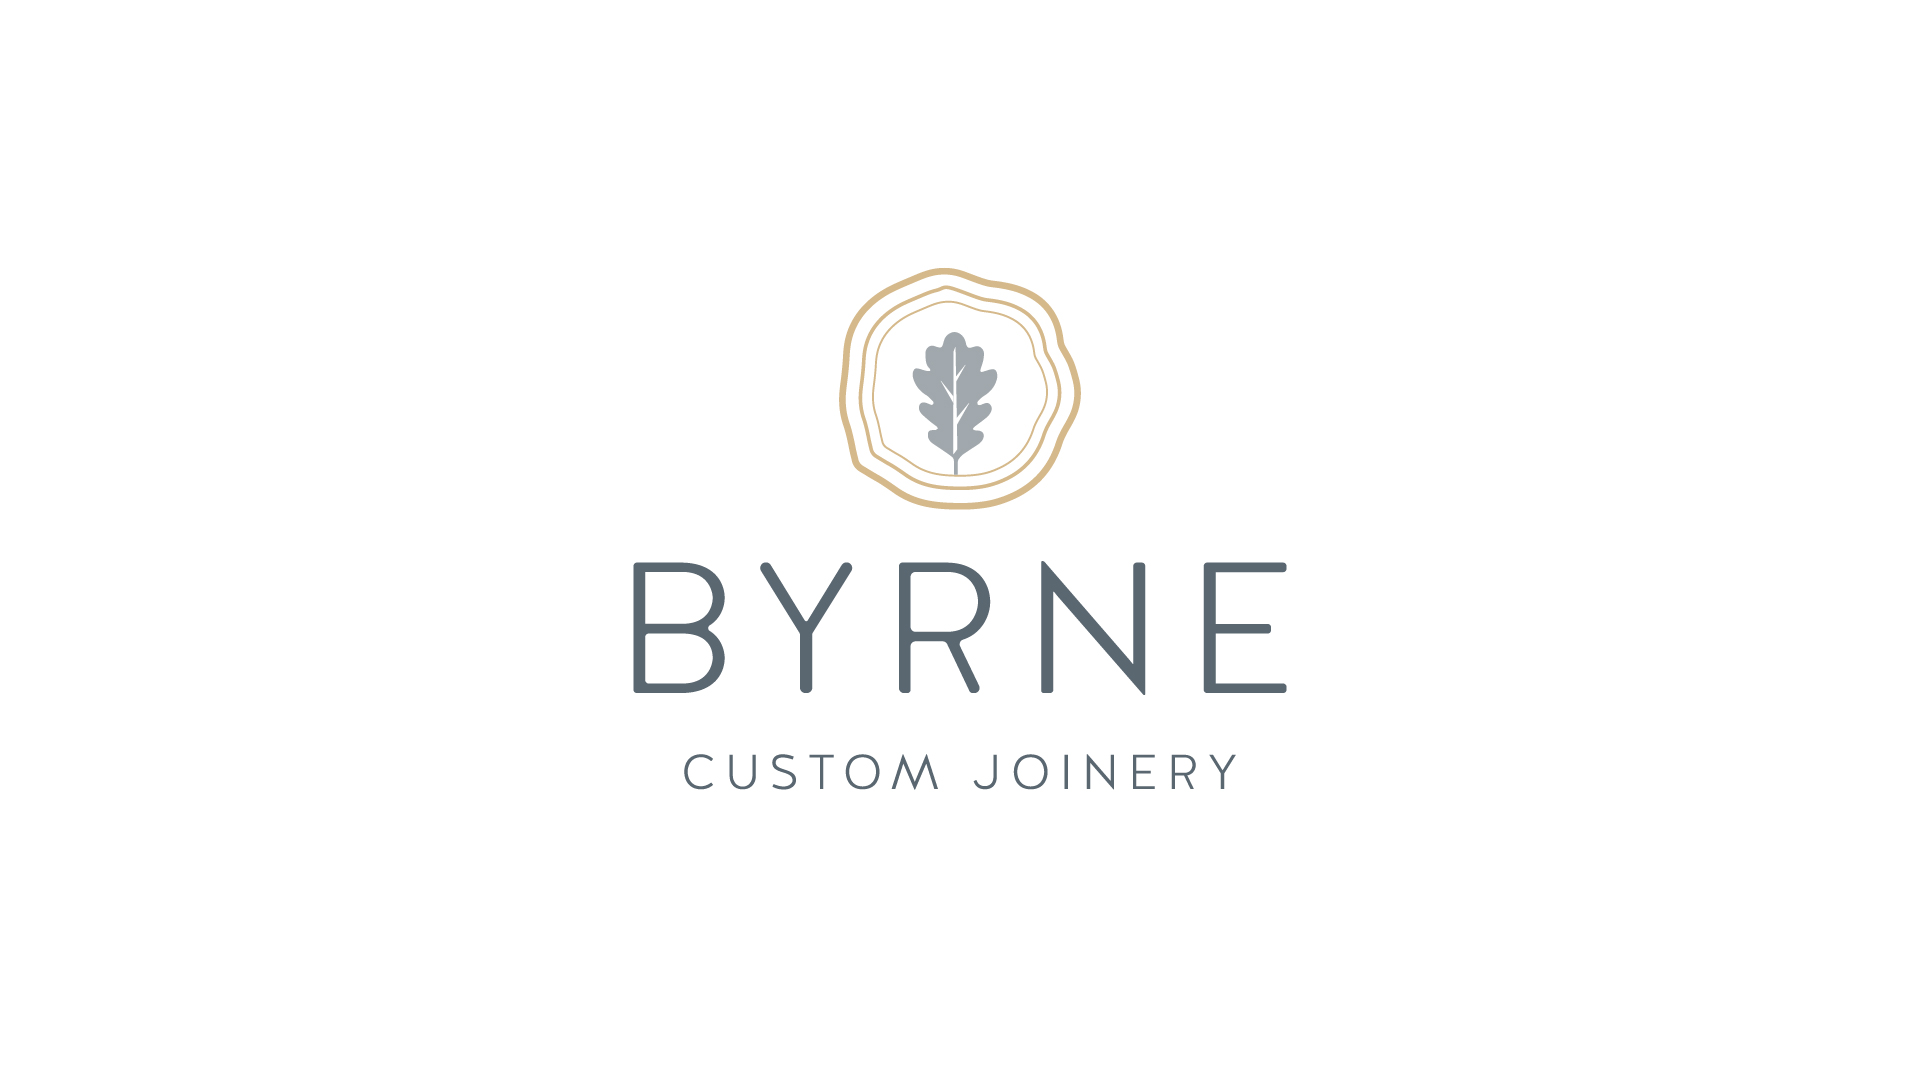 Cover image: Byrne Joinery